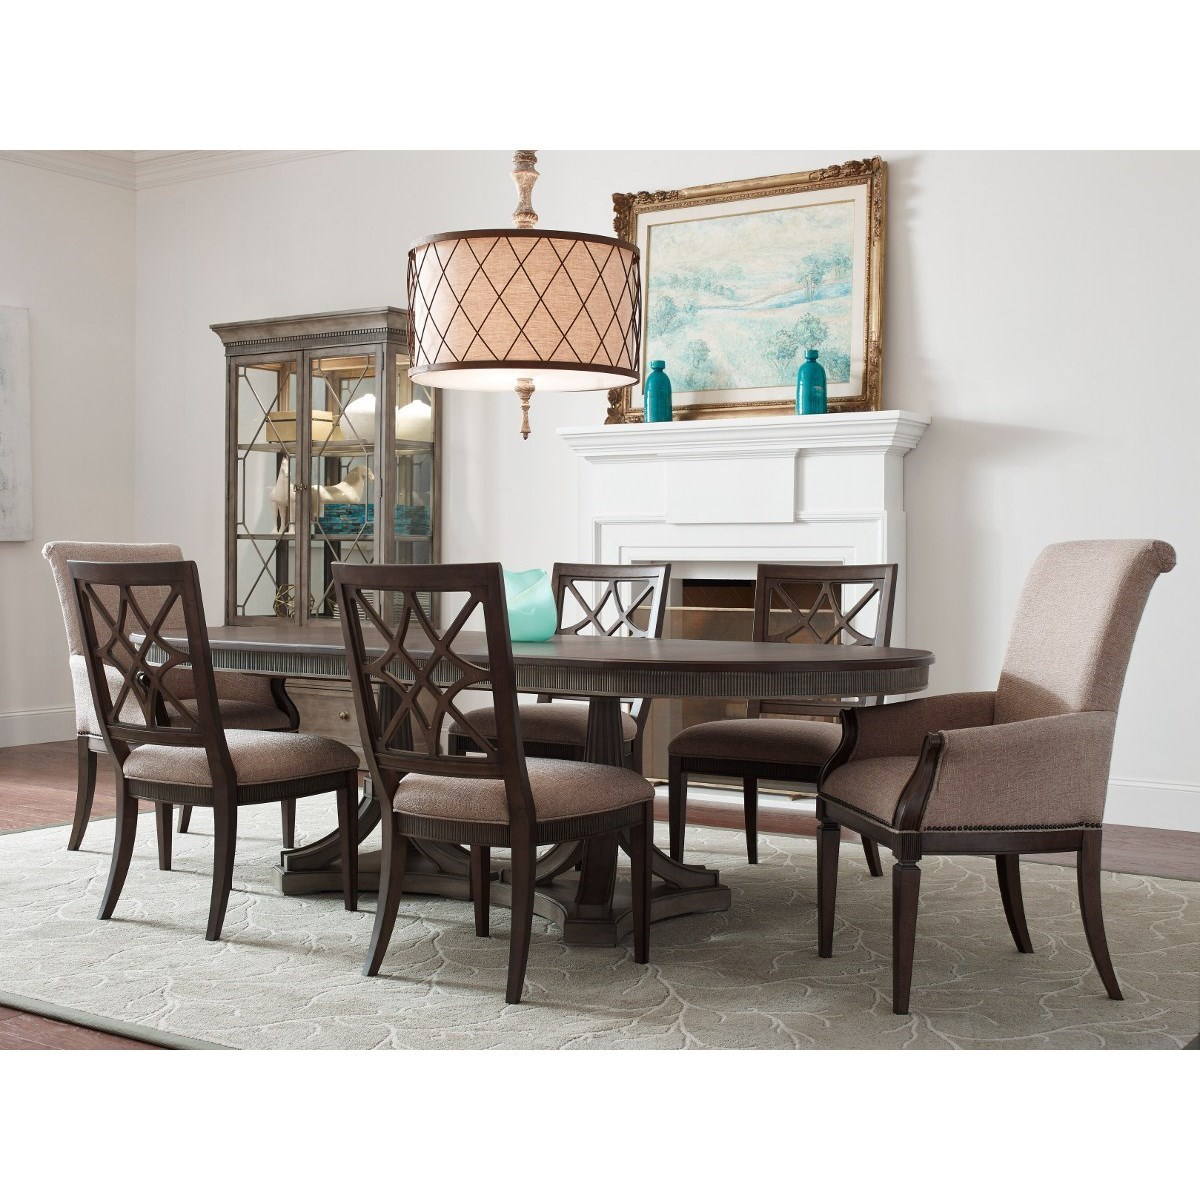 Savona Seven Piece Table & Chair Set by American Drew at Johnny Janosik